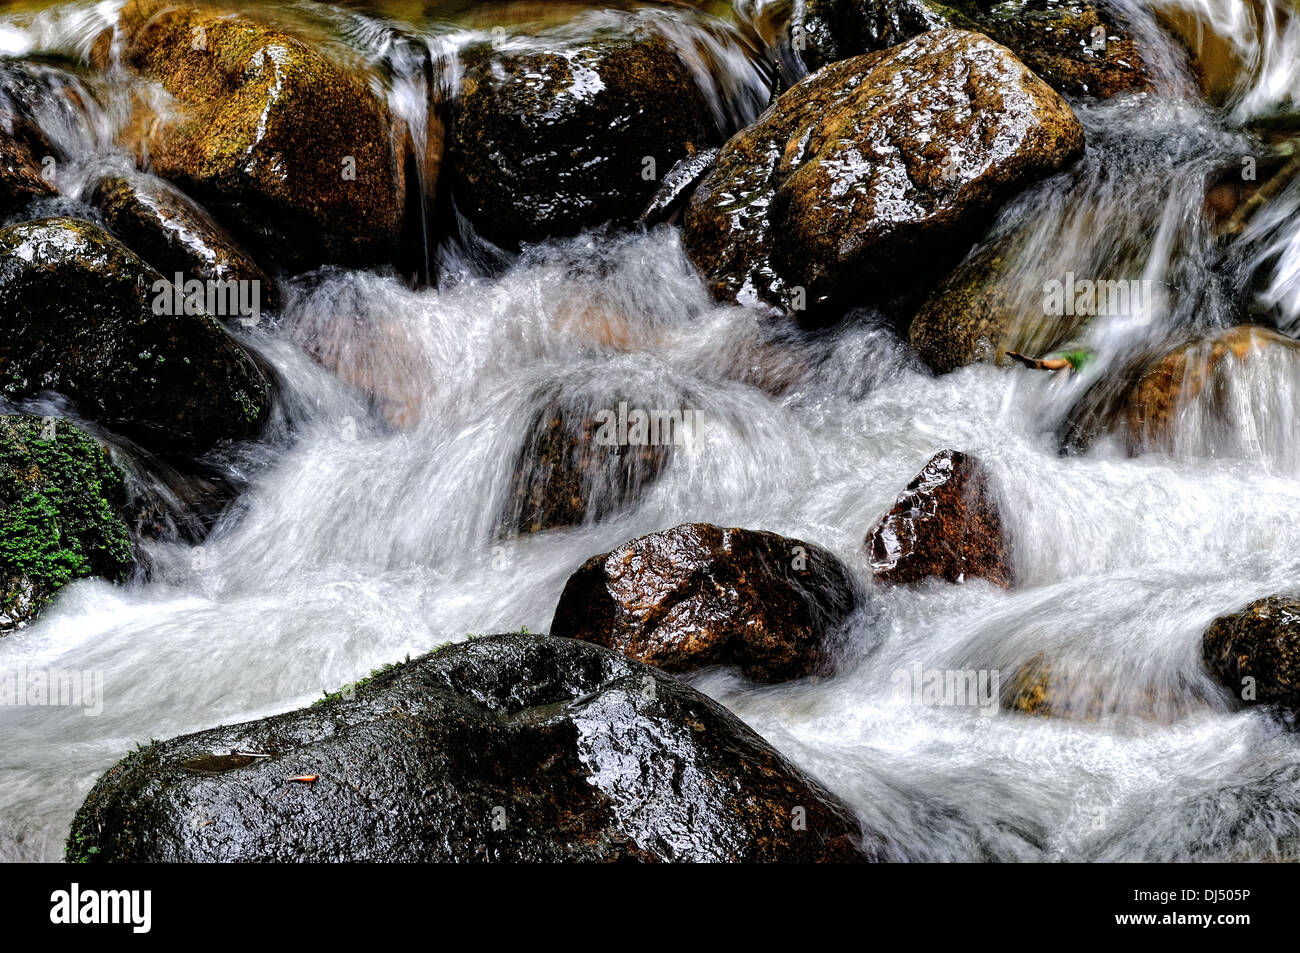 Slippery and wet by the waterfall - Stock Image